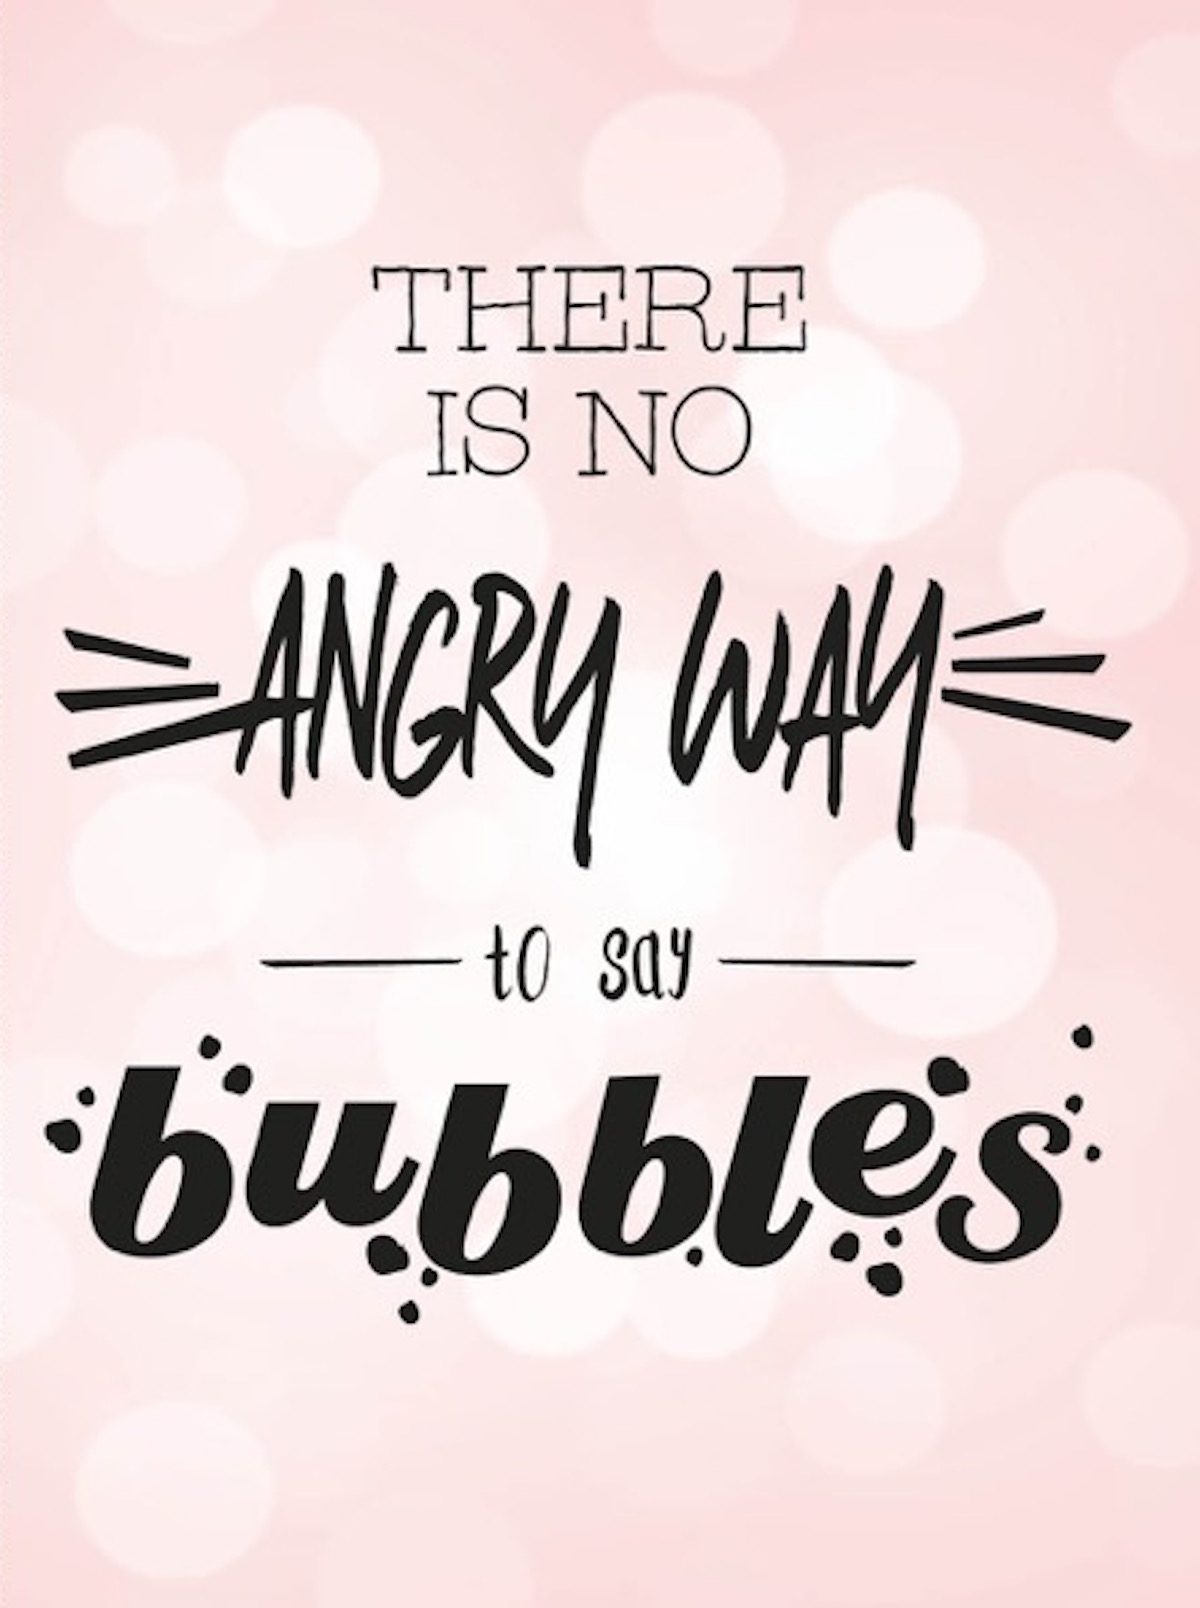 Spreuk van de week: There's no angry way to say bubbles